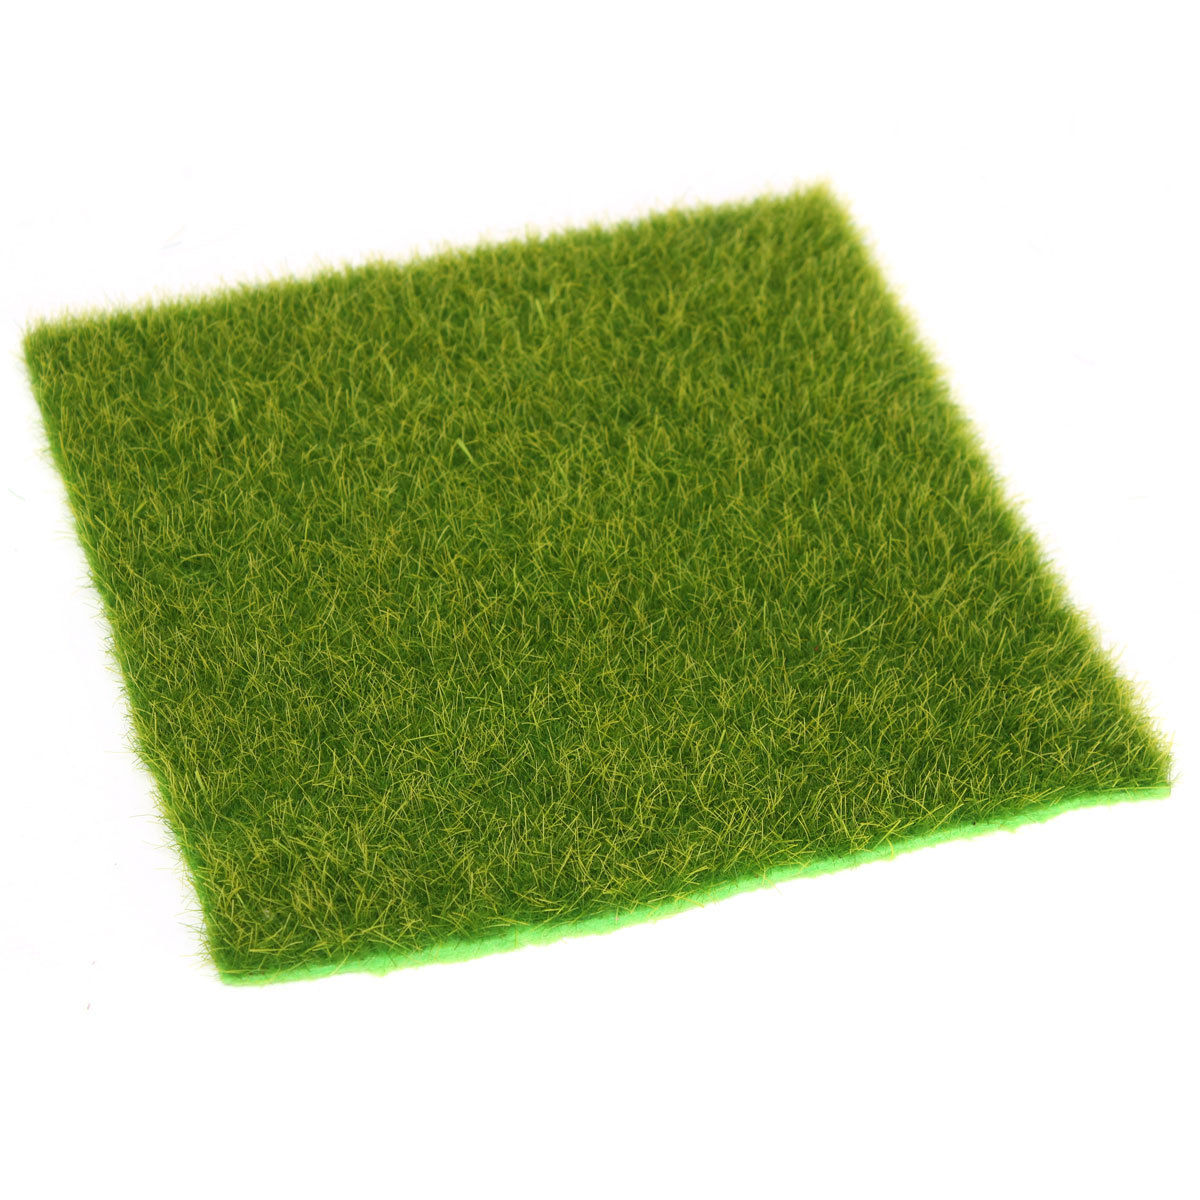 15cm artificial turf grass lawn grass plant miniature for Faux grass for crafts